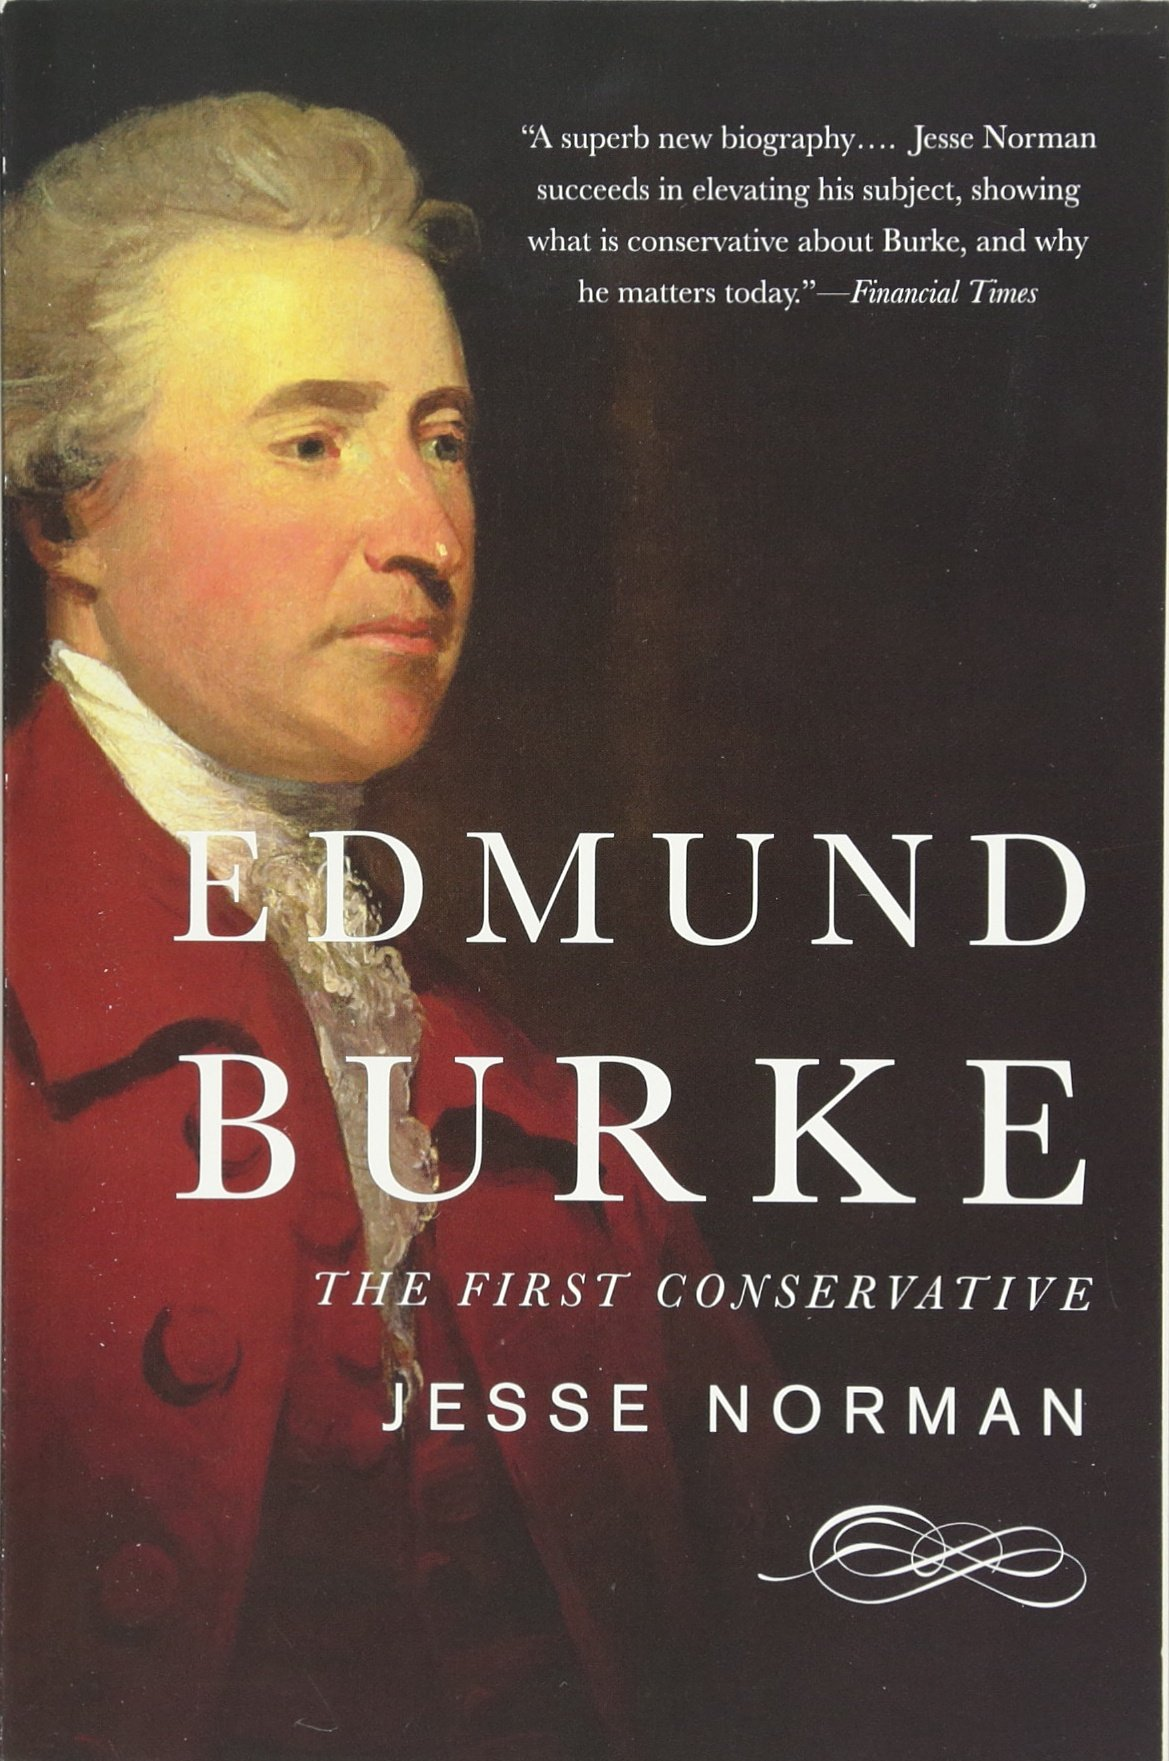 Download image 1700s woman portrait pc android iphone and ipad - Edmund Burke The First Conservative Jesse Norman 9780465062935 Amazon Com Books